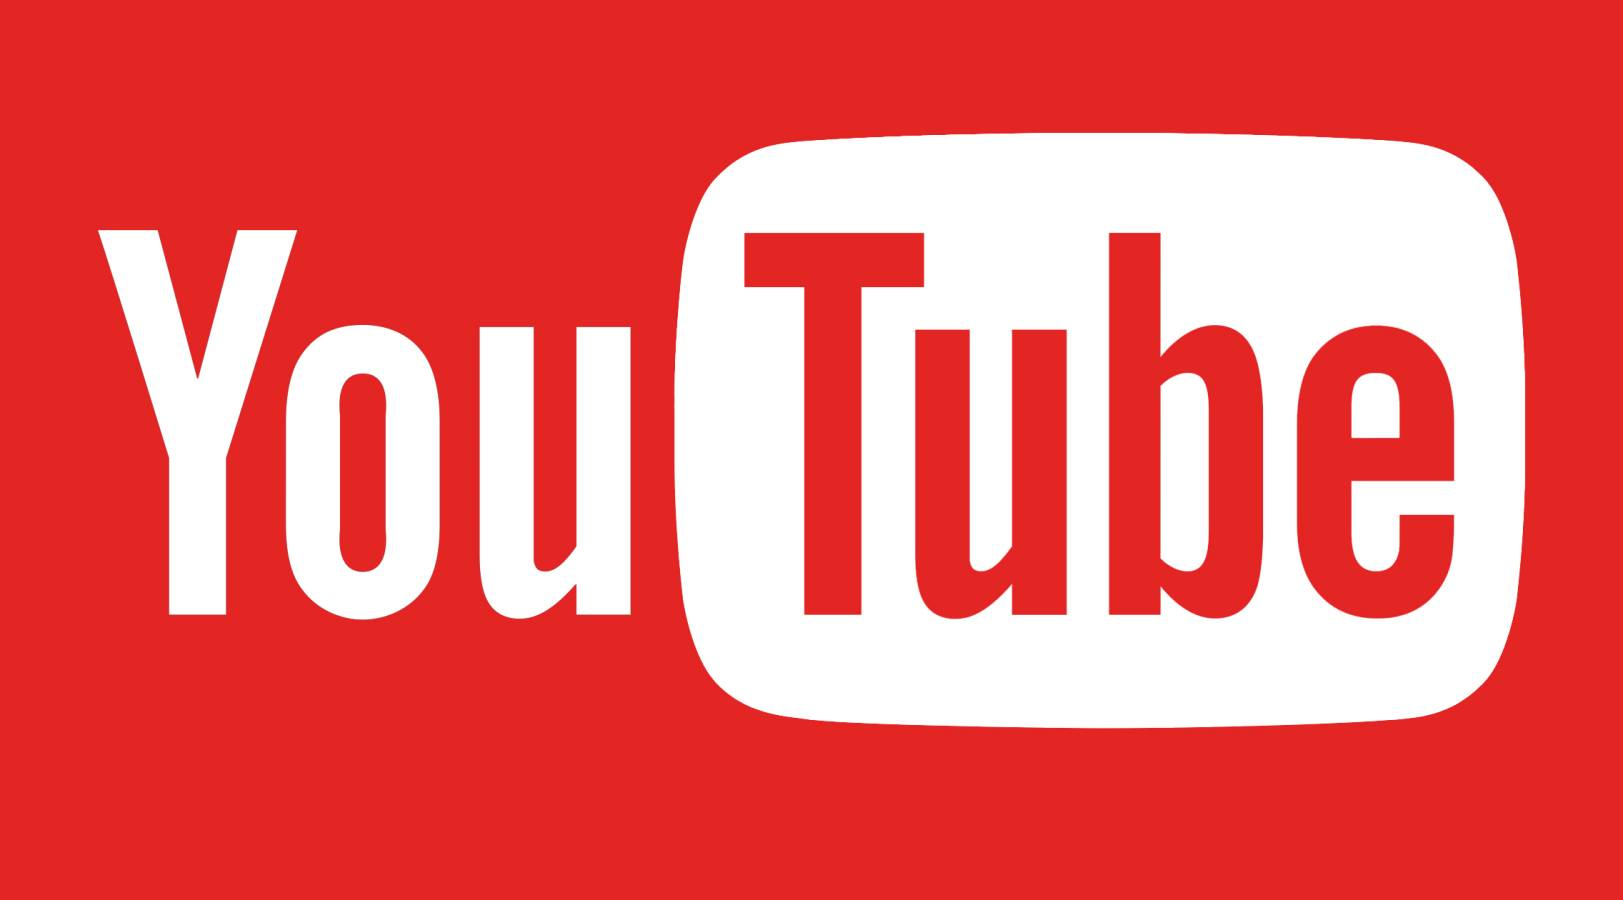 YouTube Aplicatia Telefoane Tablete Actualizata